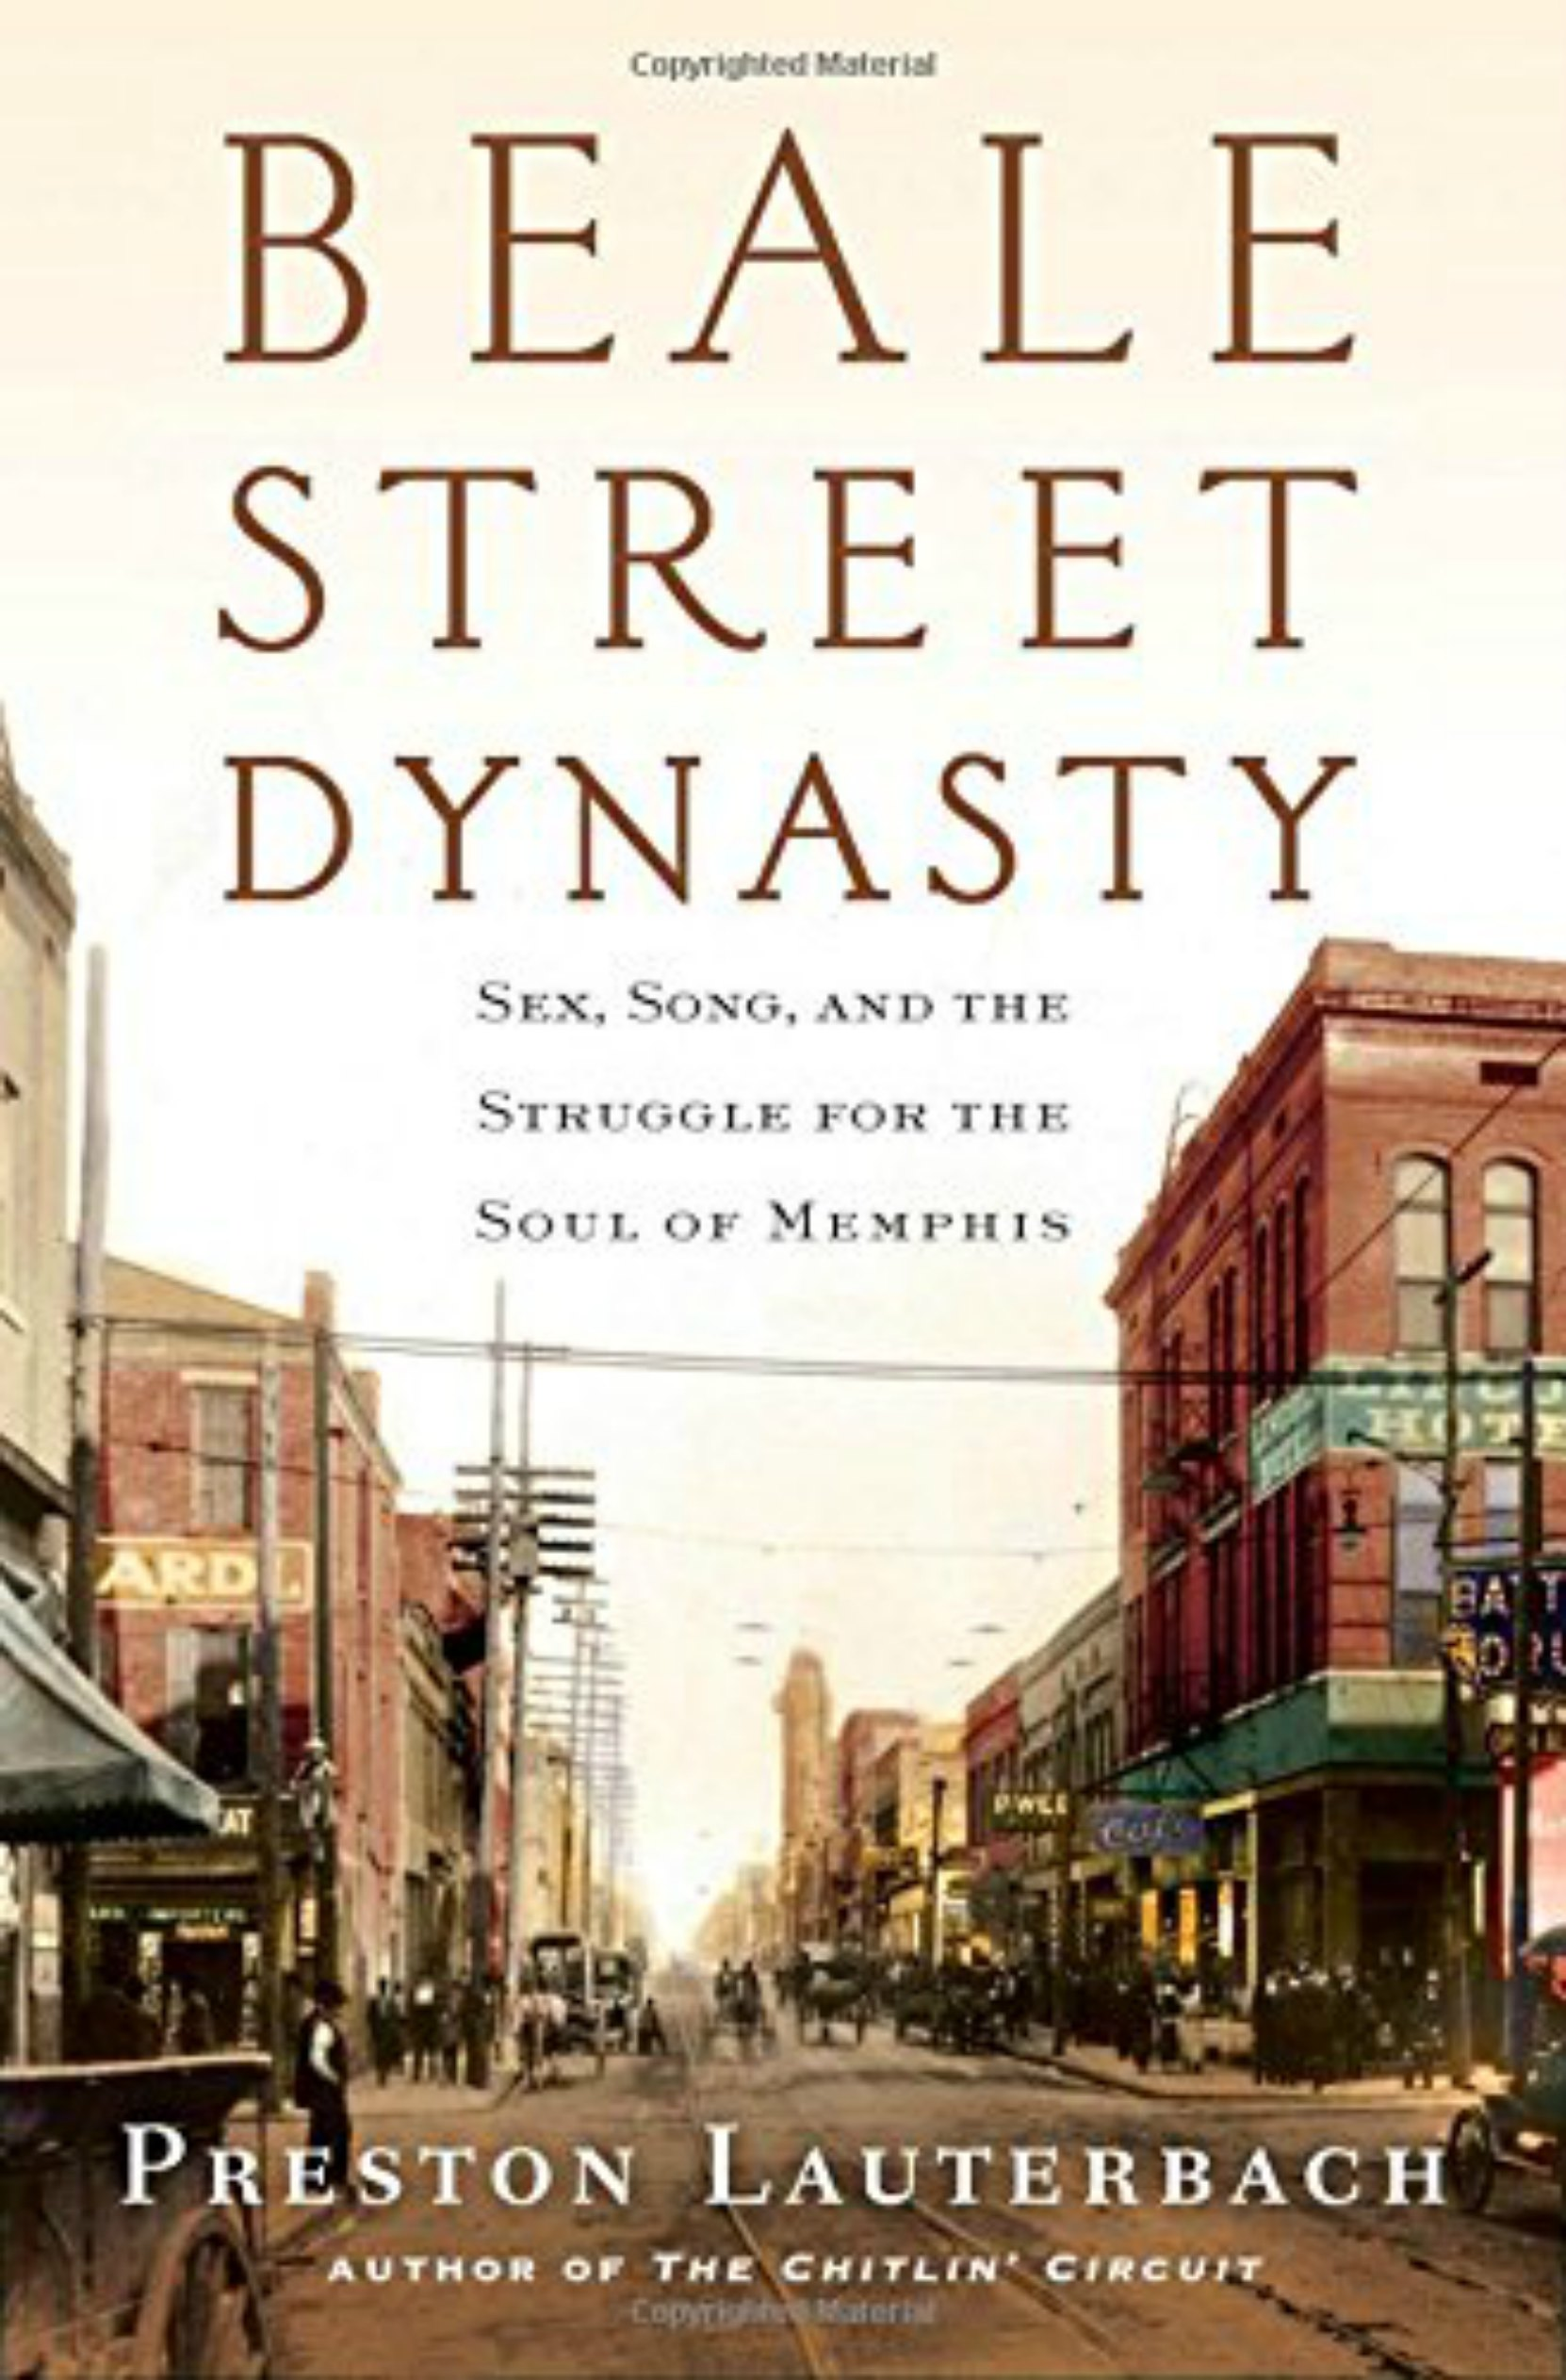 Book cover, Beale Street Dynasty by Preston Lauterbach